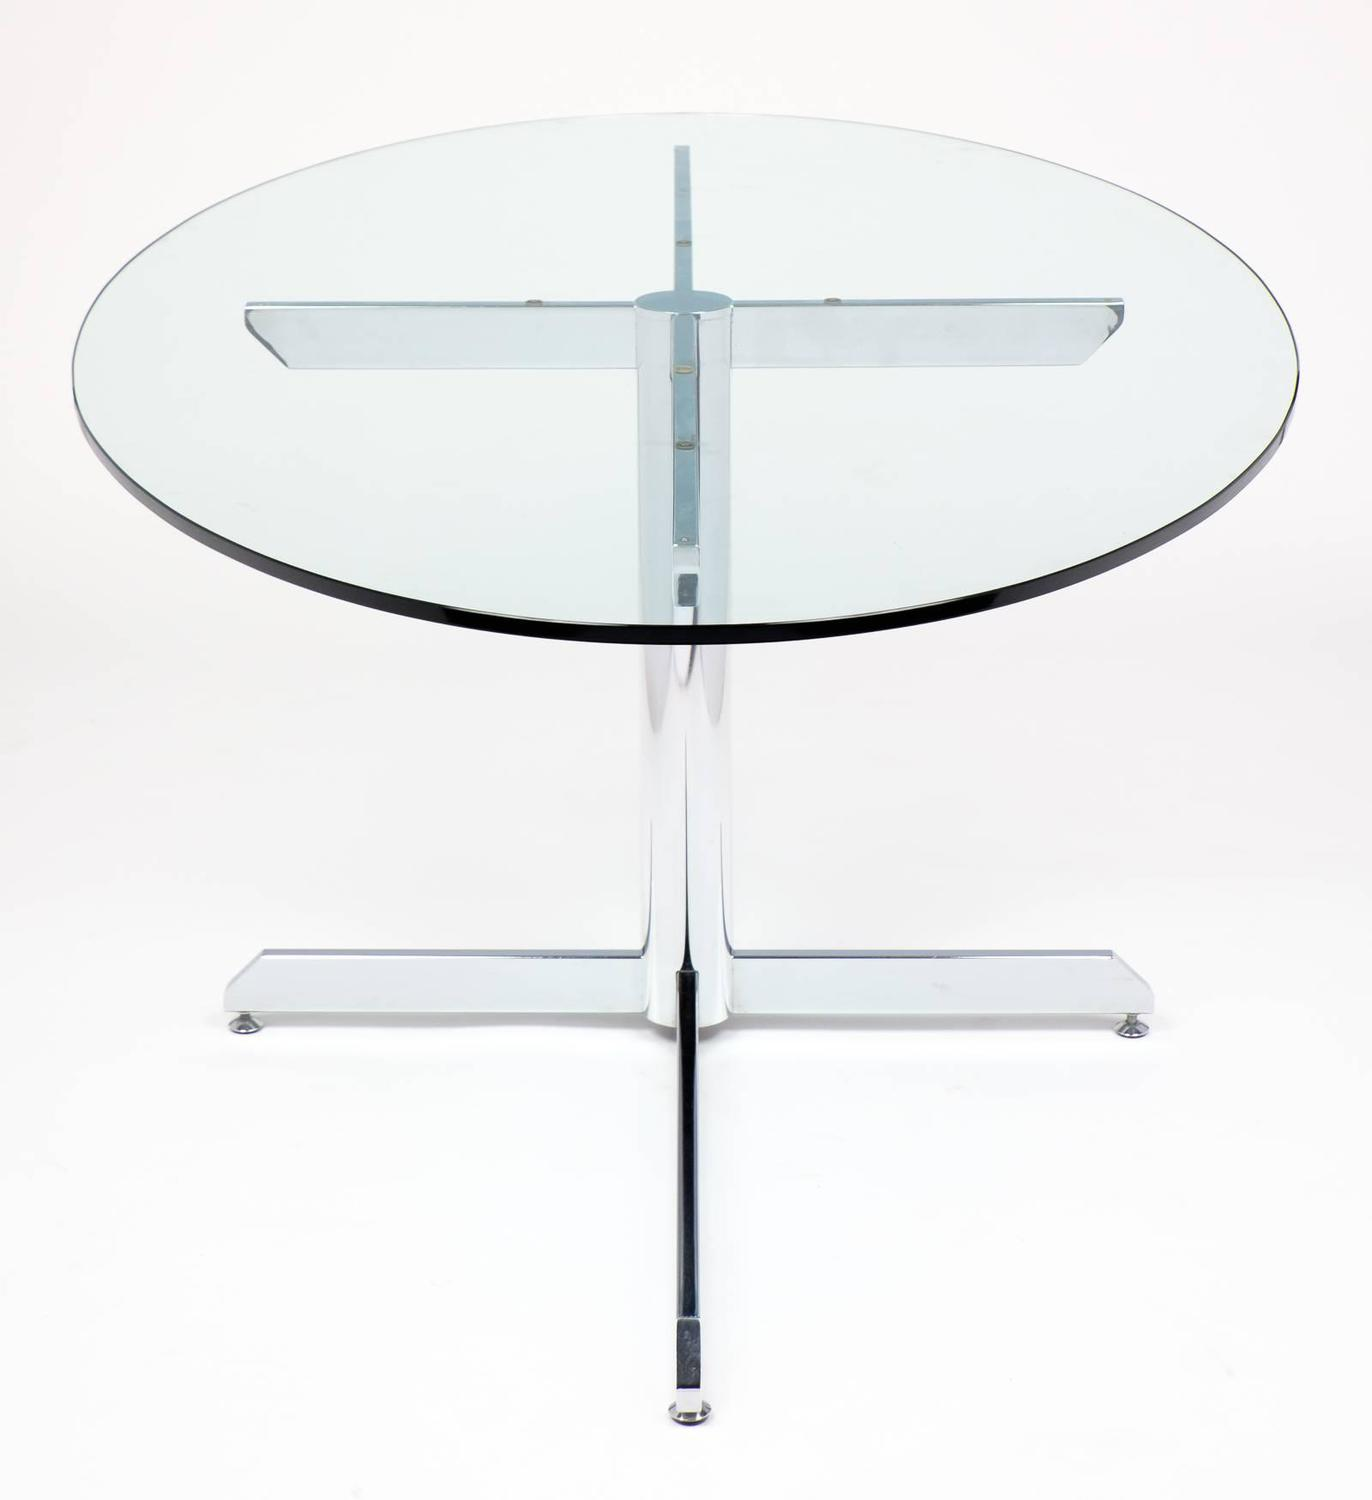 French Modernist Oval Glass And Chrome Knoll Style Dining Table For Sale At 1stdibs